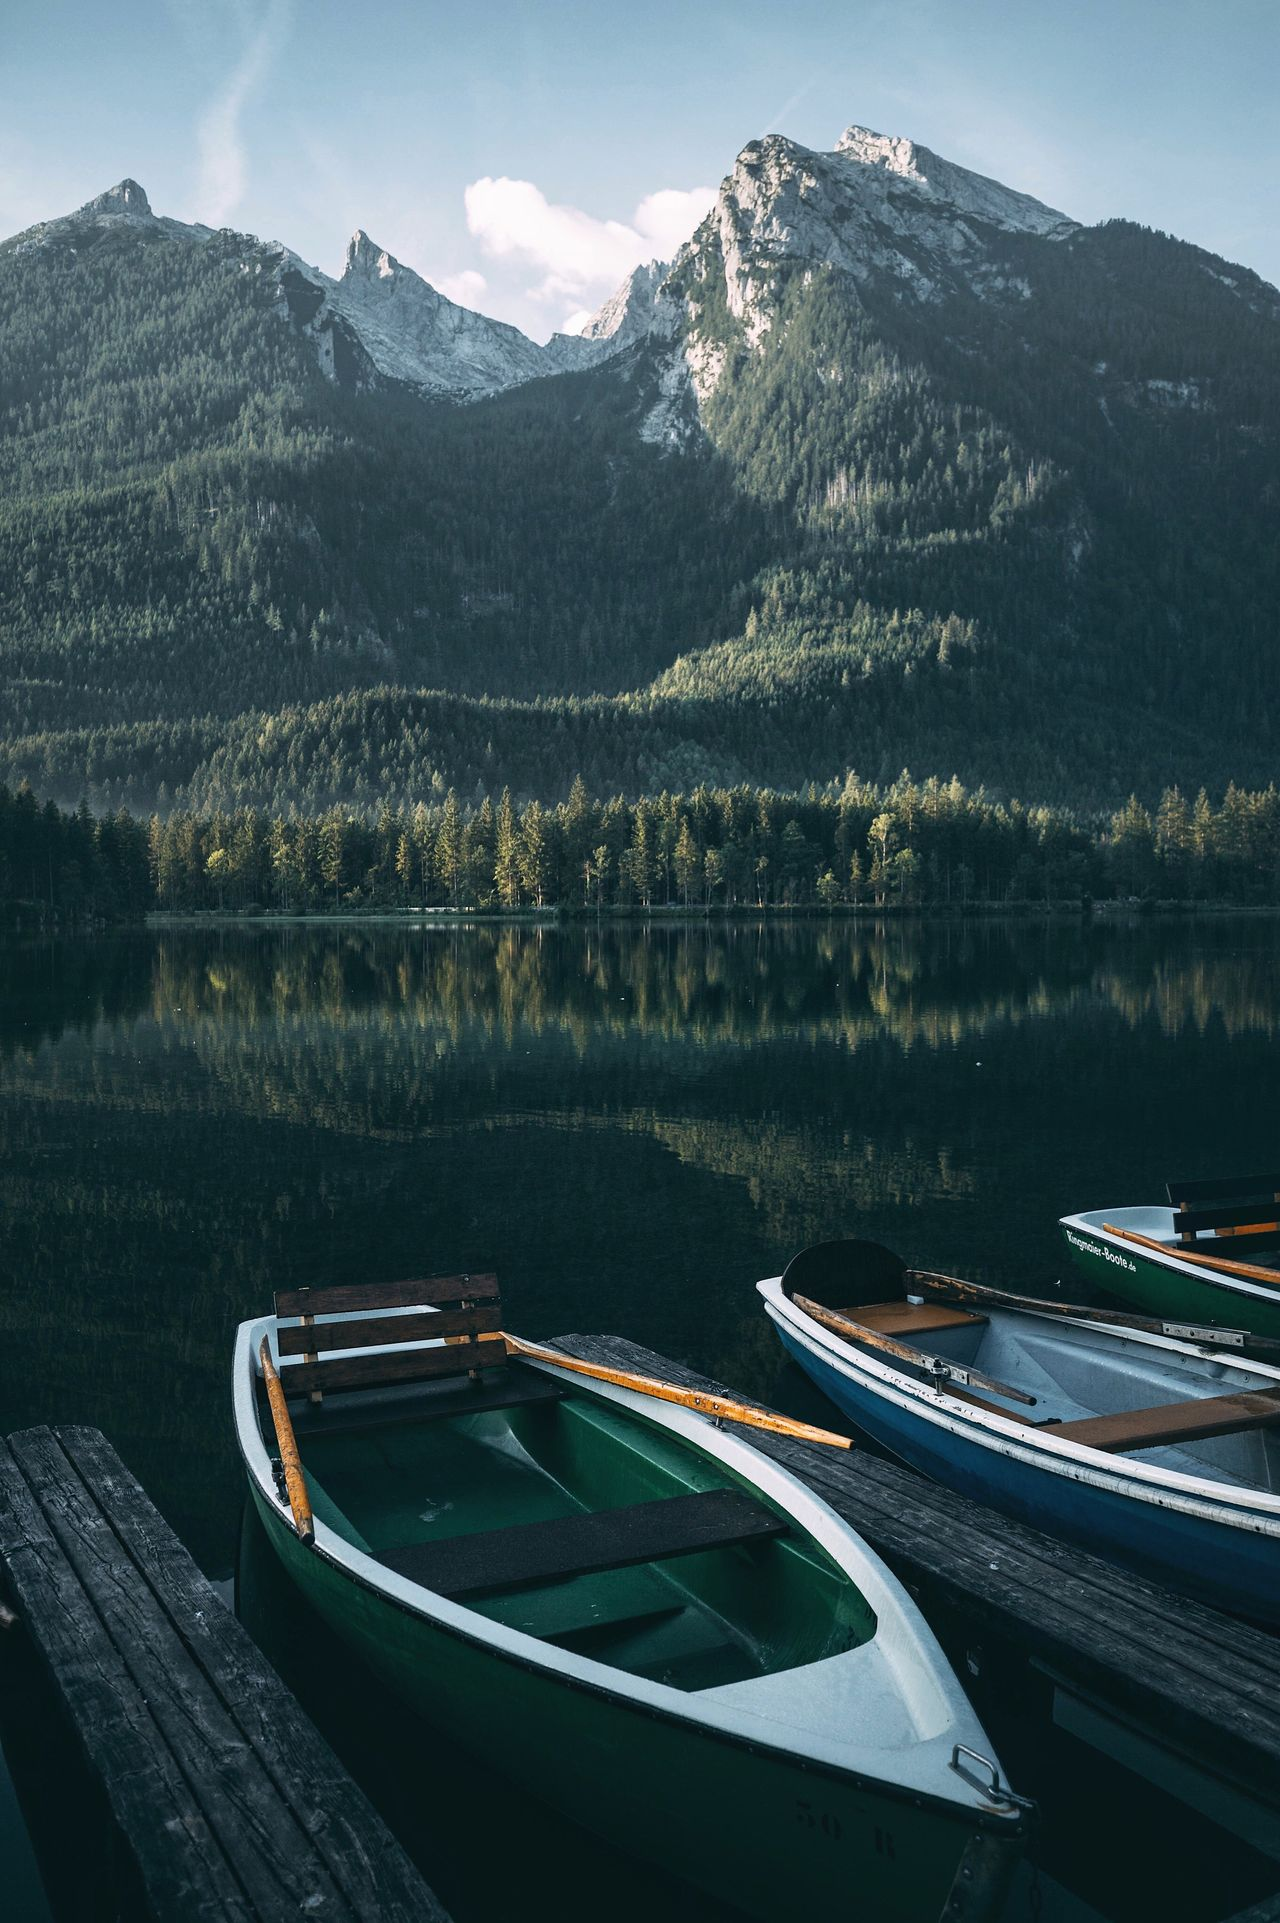 Green paradise. Mountain Water Nature Lake Transportation Nautical Vessel Mountain Range Mode Of Transport Beauty In Nature Boat Outdoors Scenics Tranquility Day Moored No People Sky Tree Bavaria Alps Germany